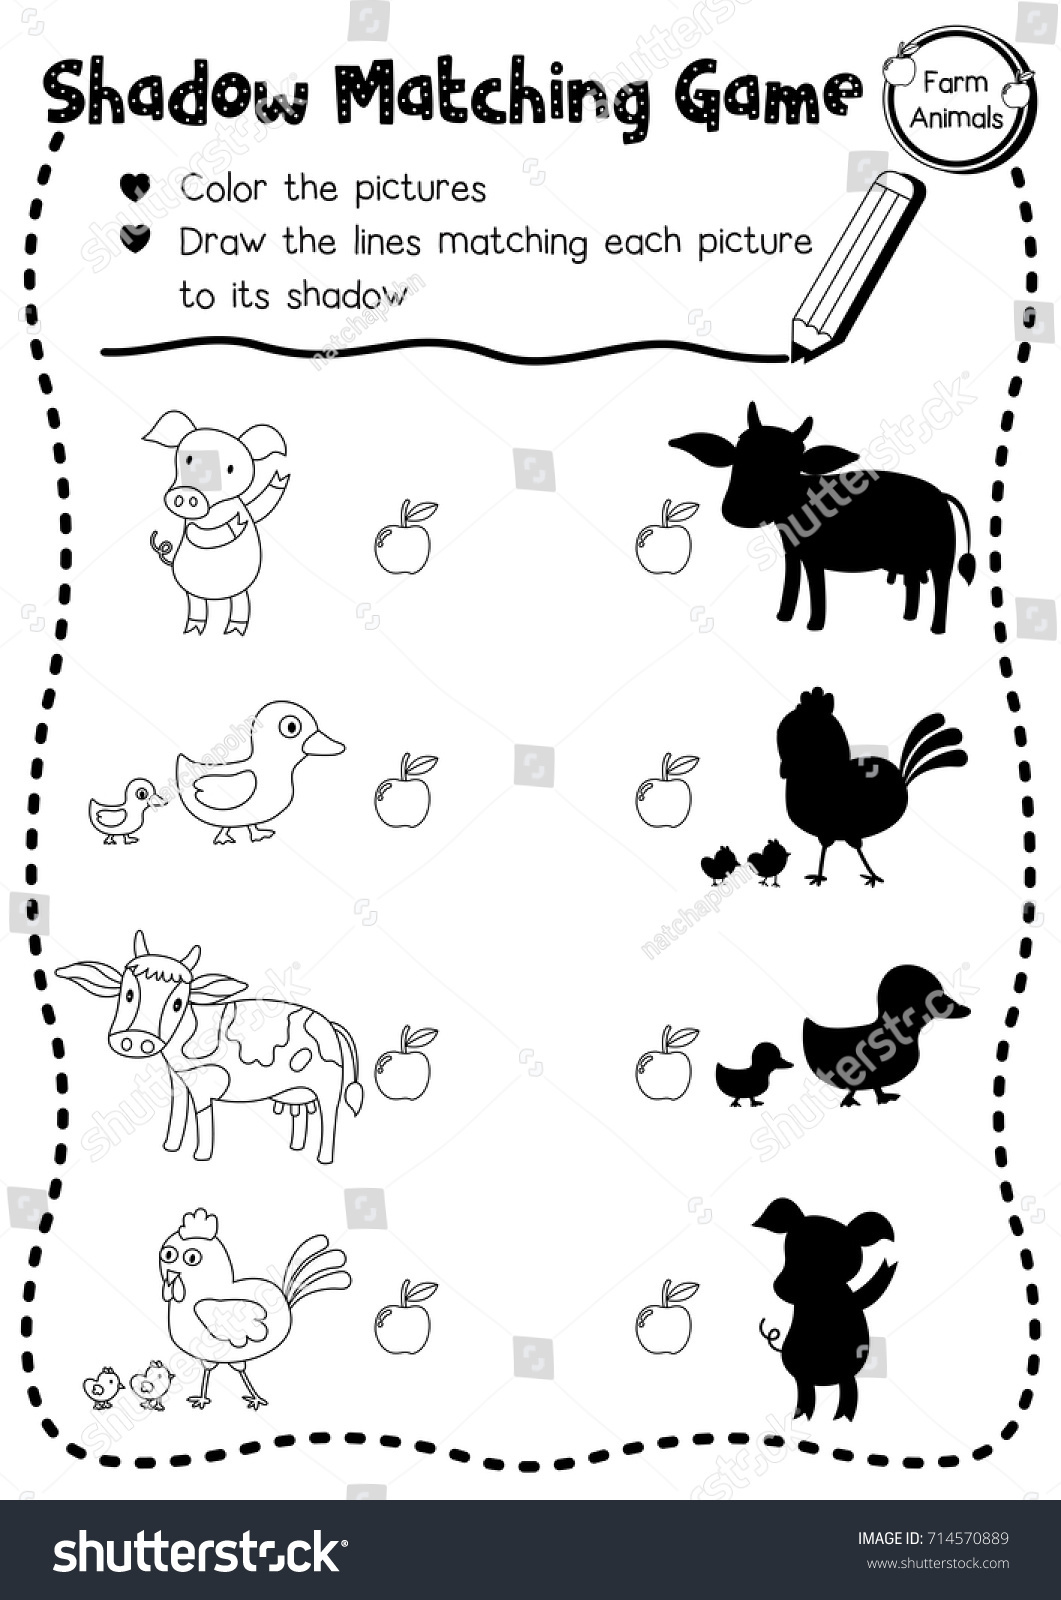 Preschool Farm Animals Worksheet For Kindergarten